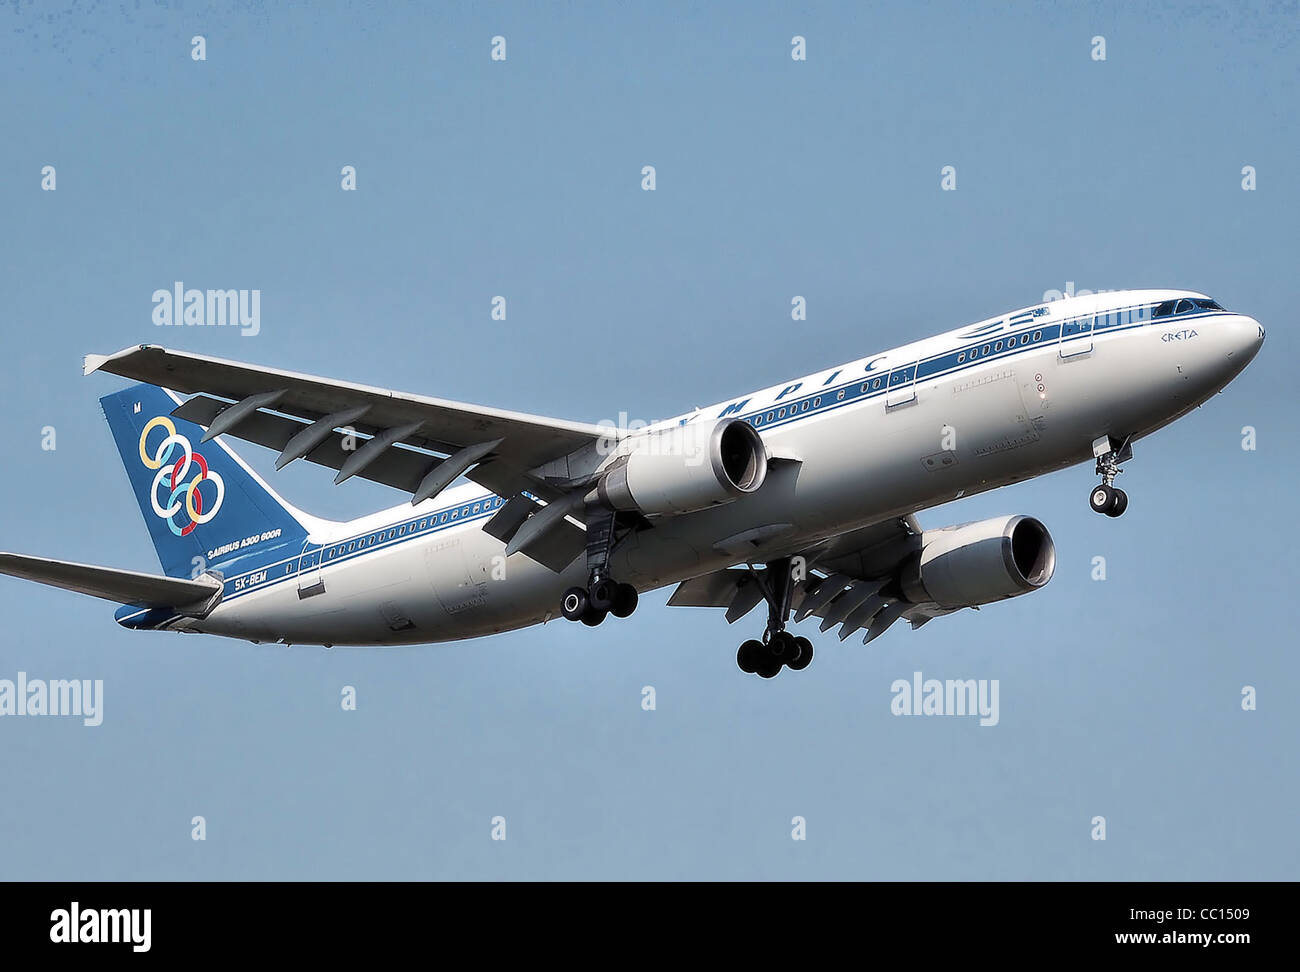 Olympic Airlines Airbus A300B4-600R (SX-BEM) landing at London Heathrow Airport. - Stock Image